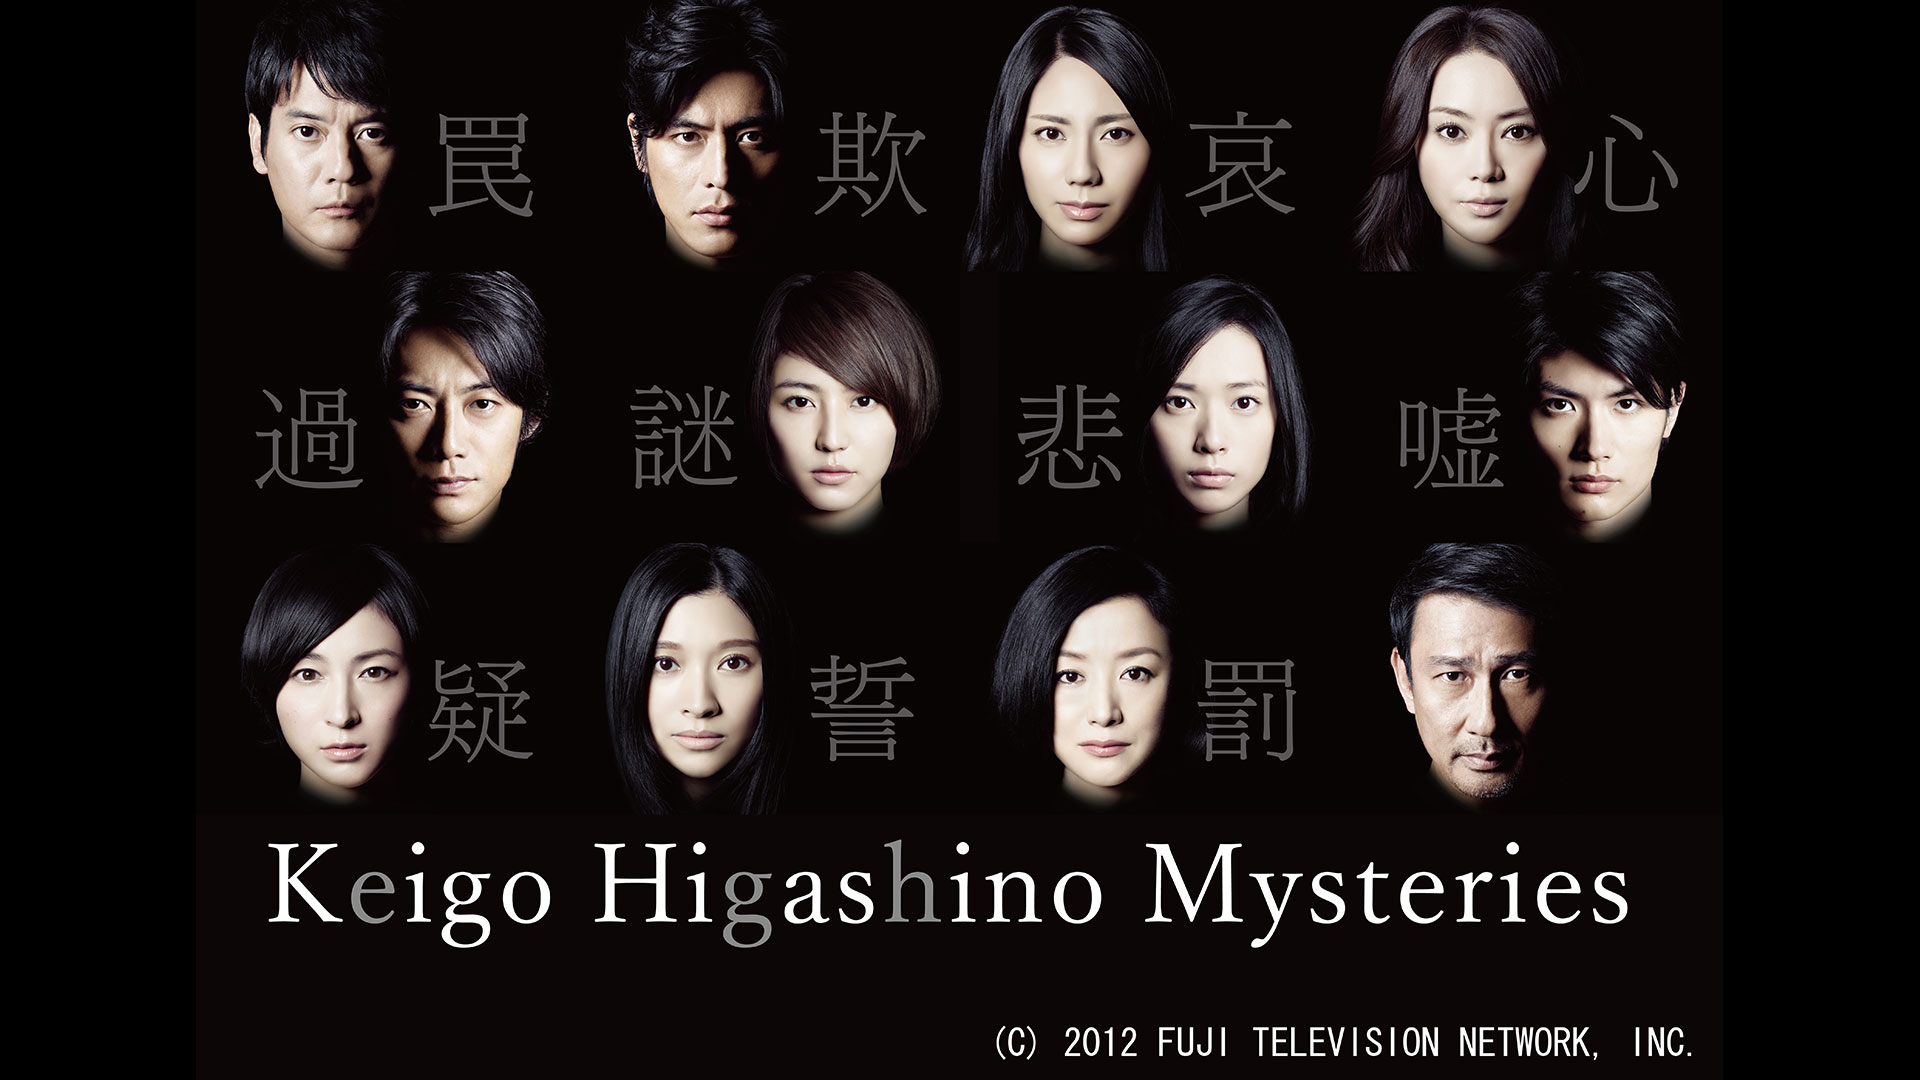 Keigo Higashino Mysteries 10 - The Promise of Twenty Years